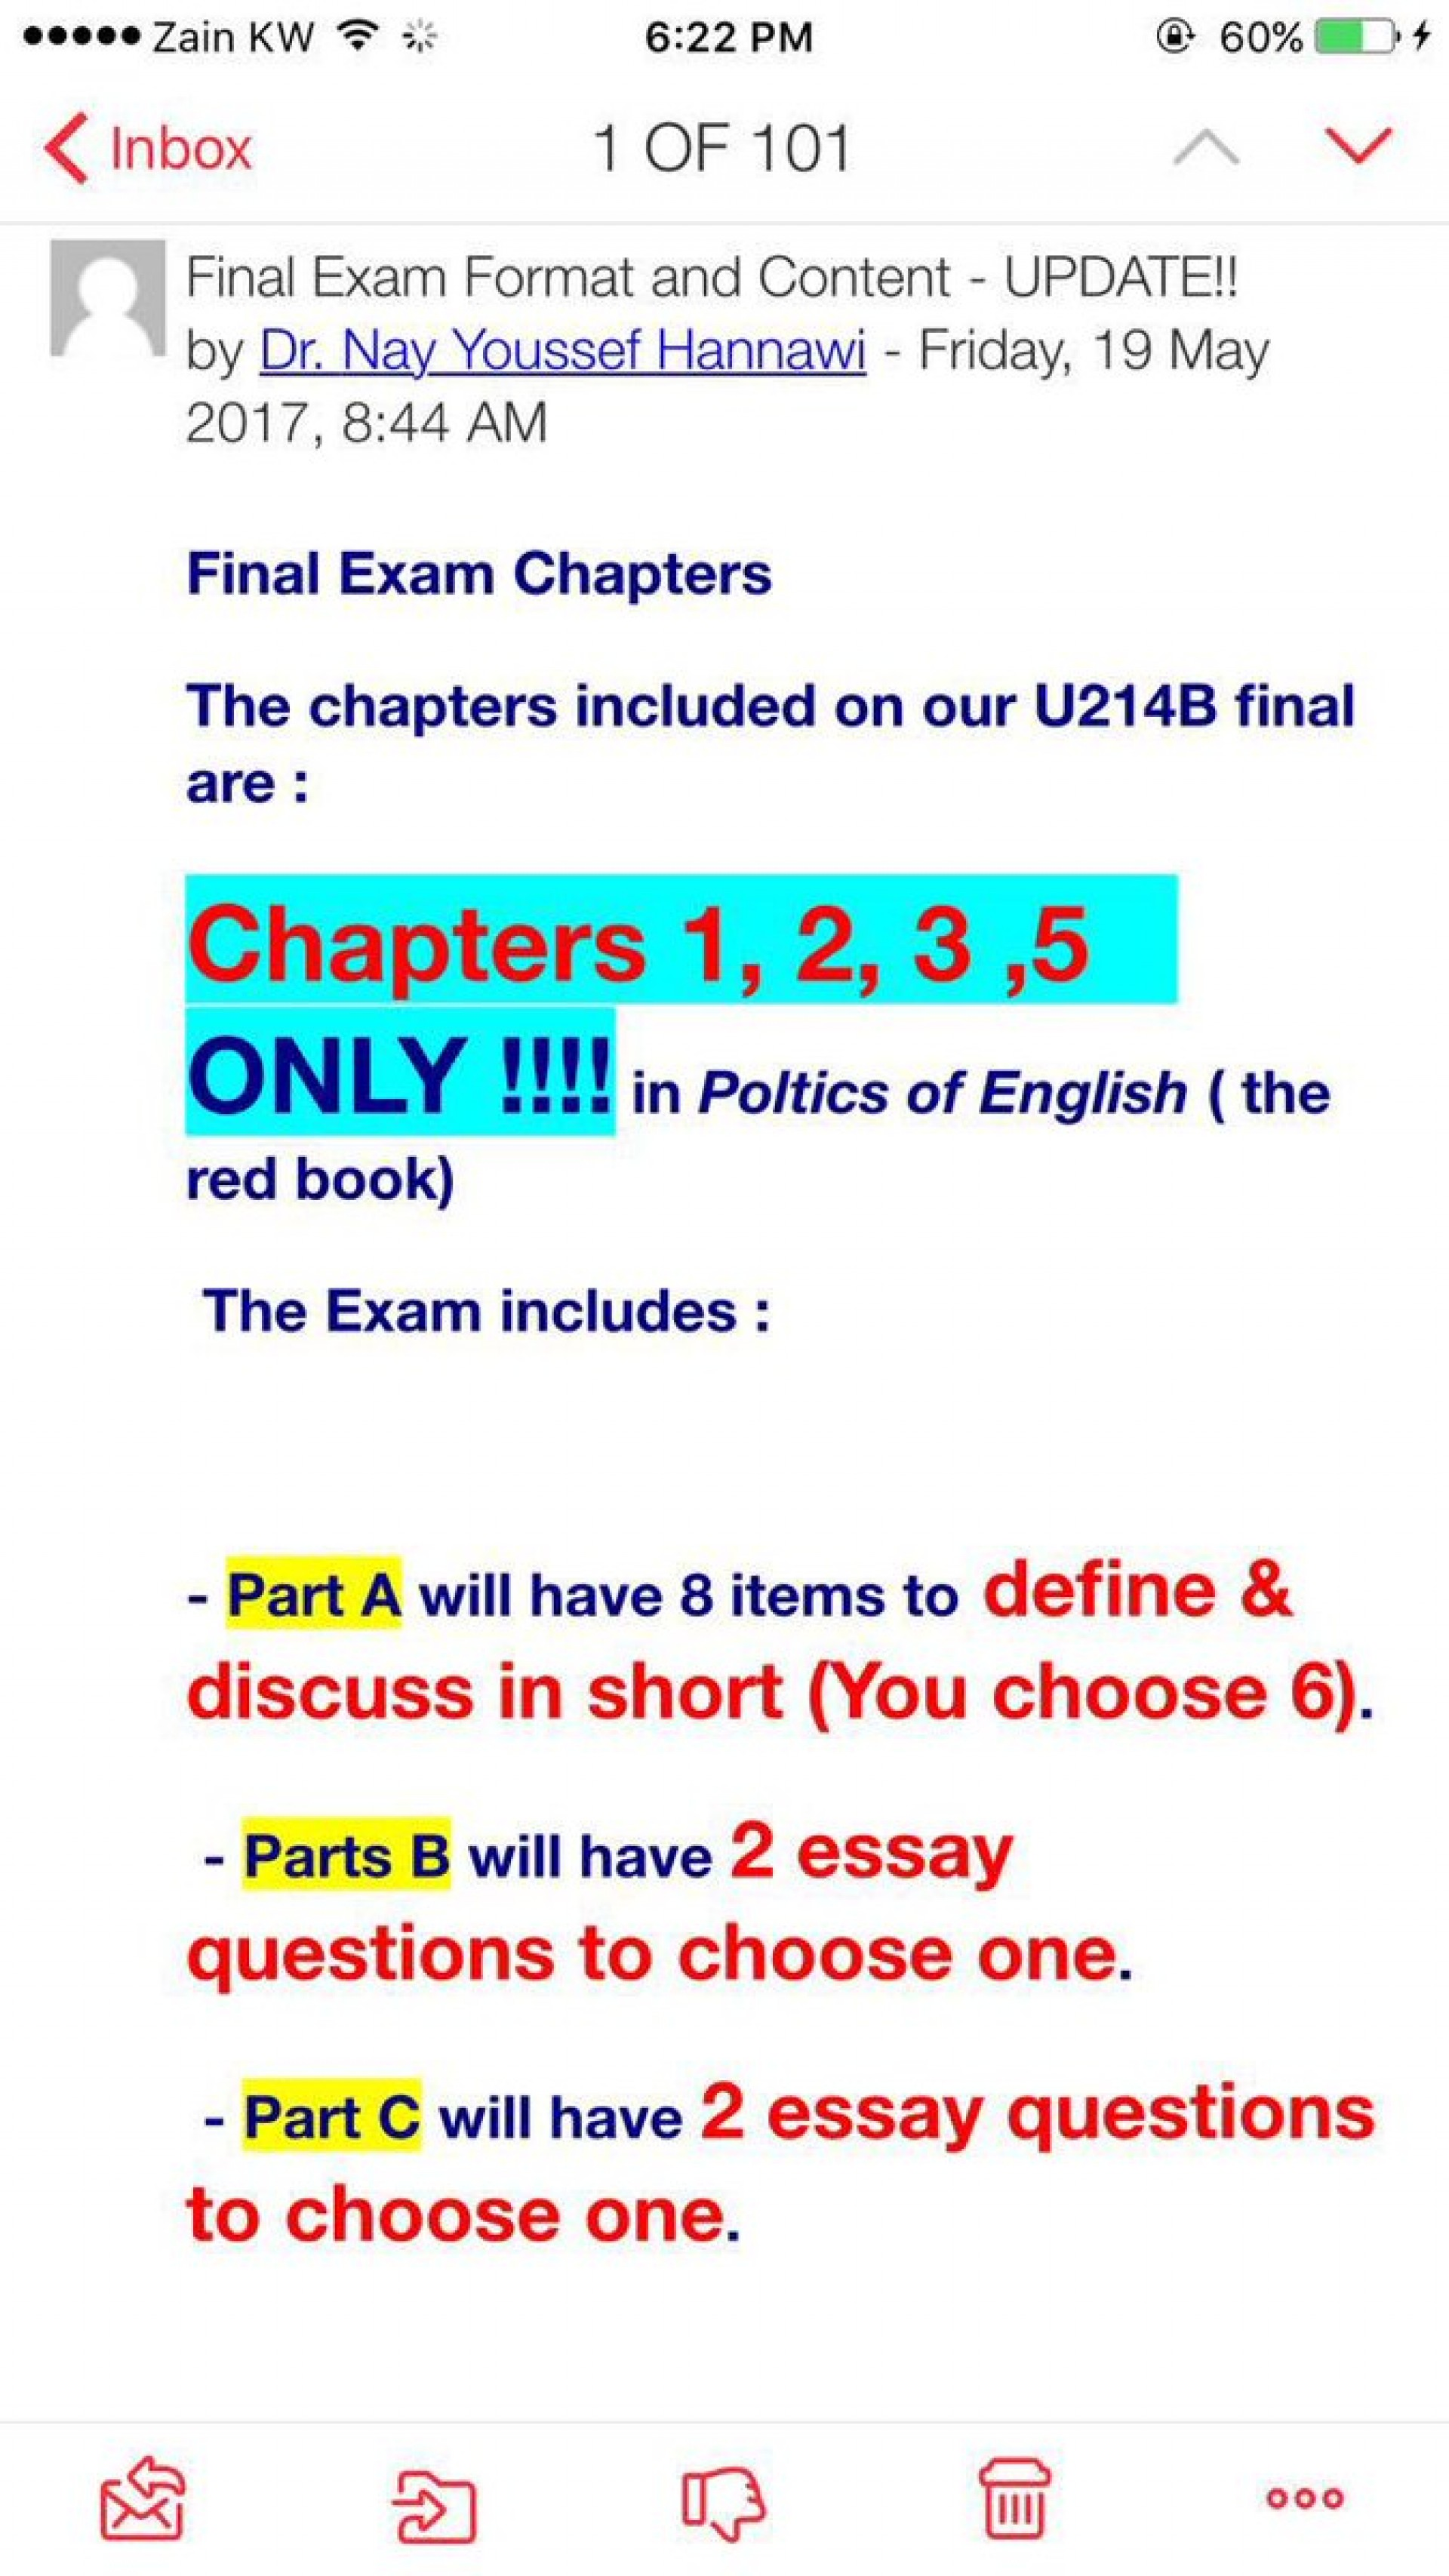 013 Essay Example Dam2f1auqaa Pz1 Issa Final Exam Awesome Answers 1920